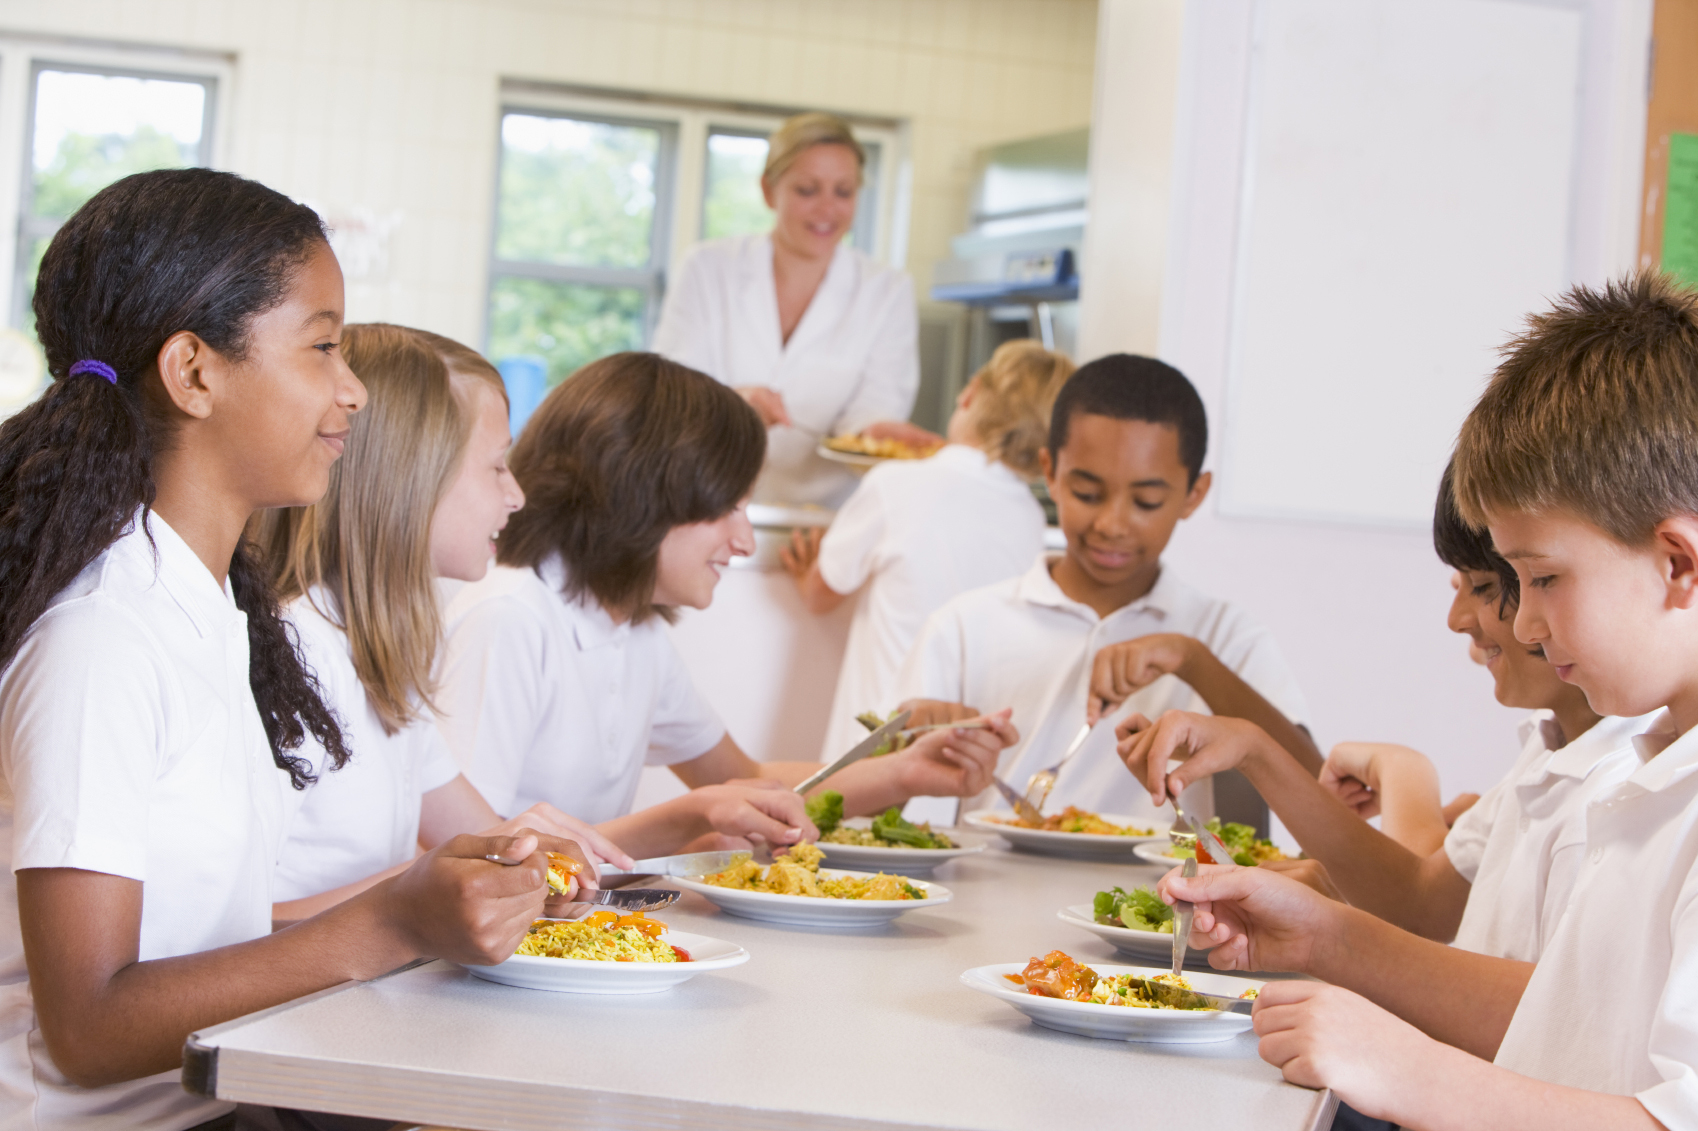 Group of students eat lunch at cafeteria table